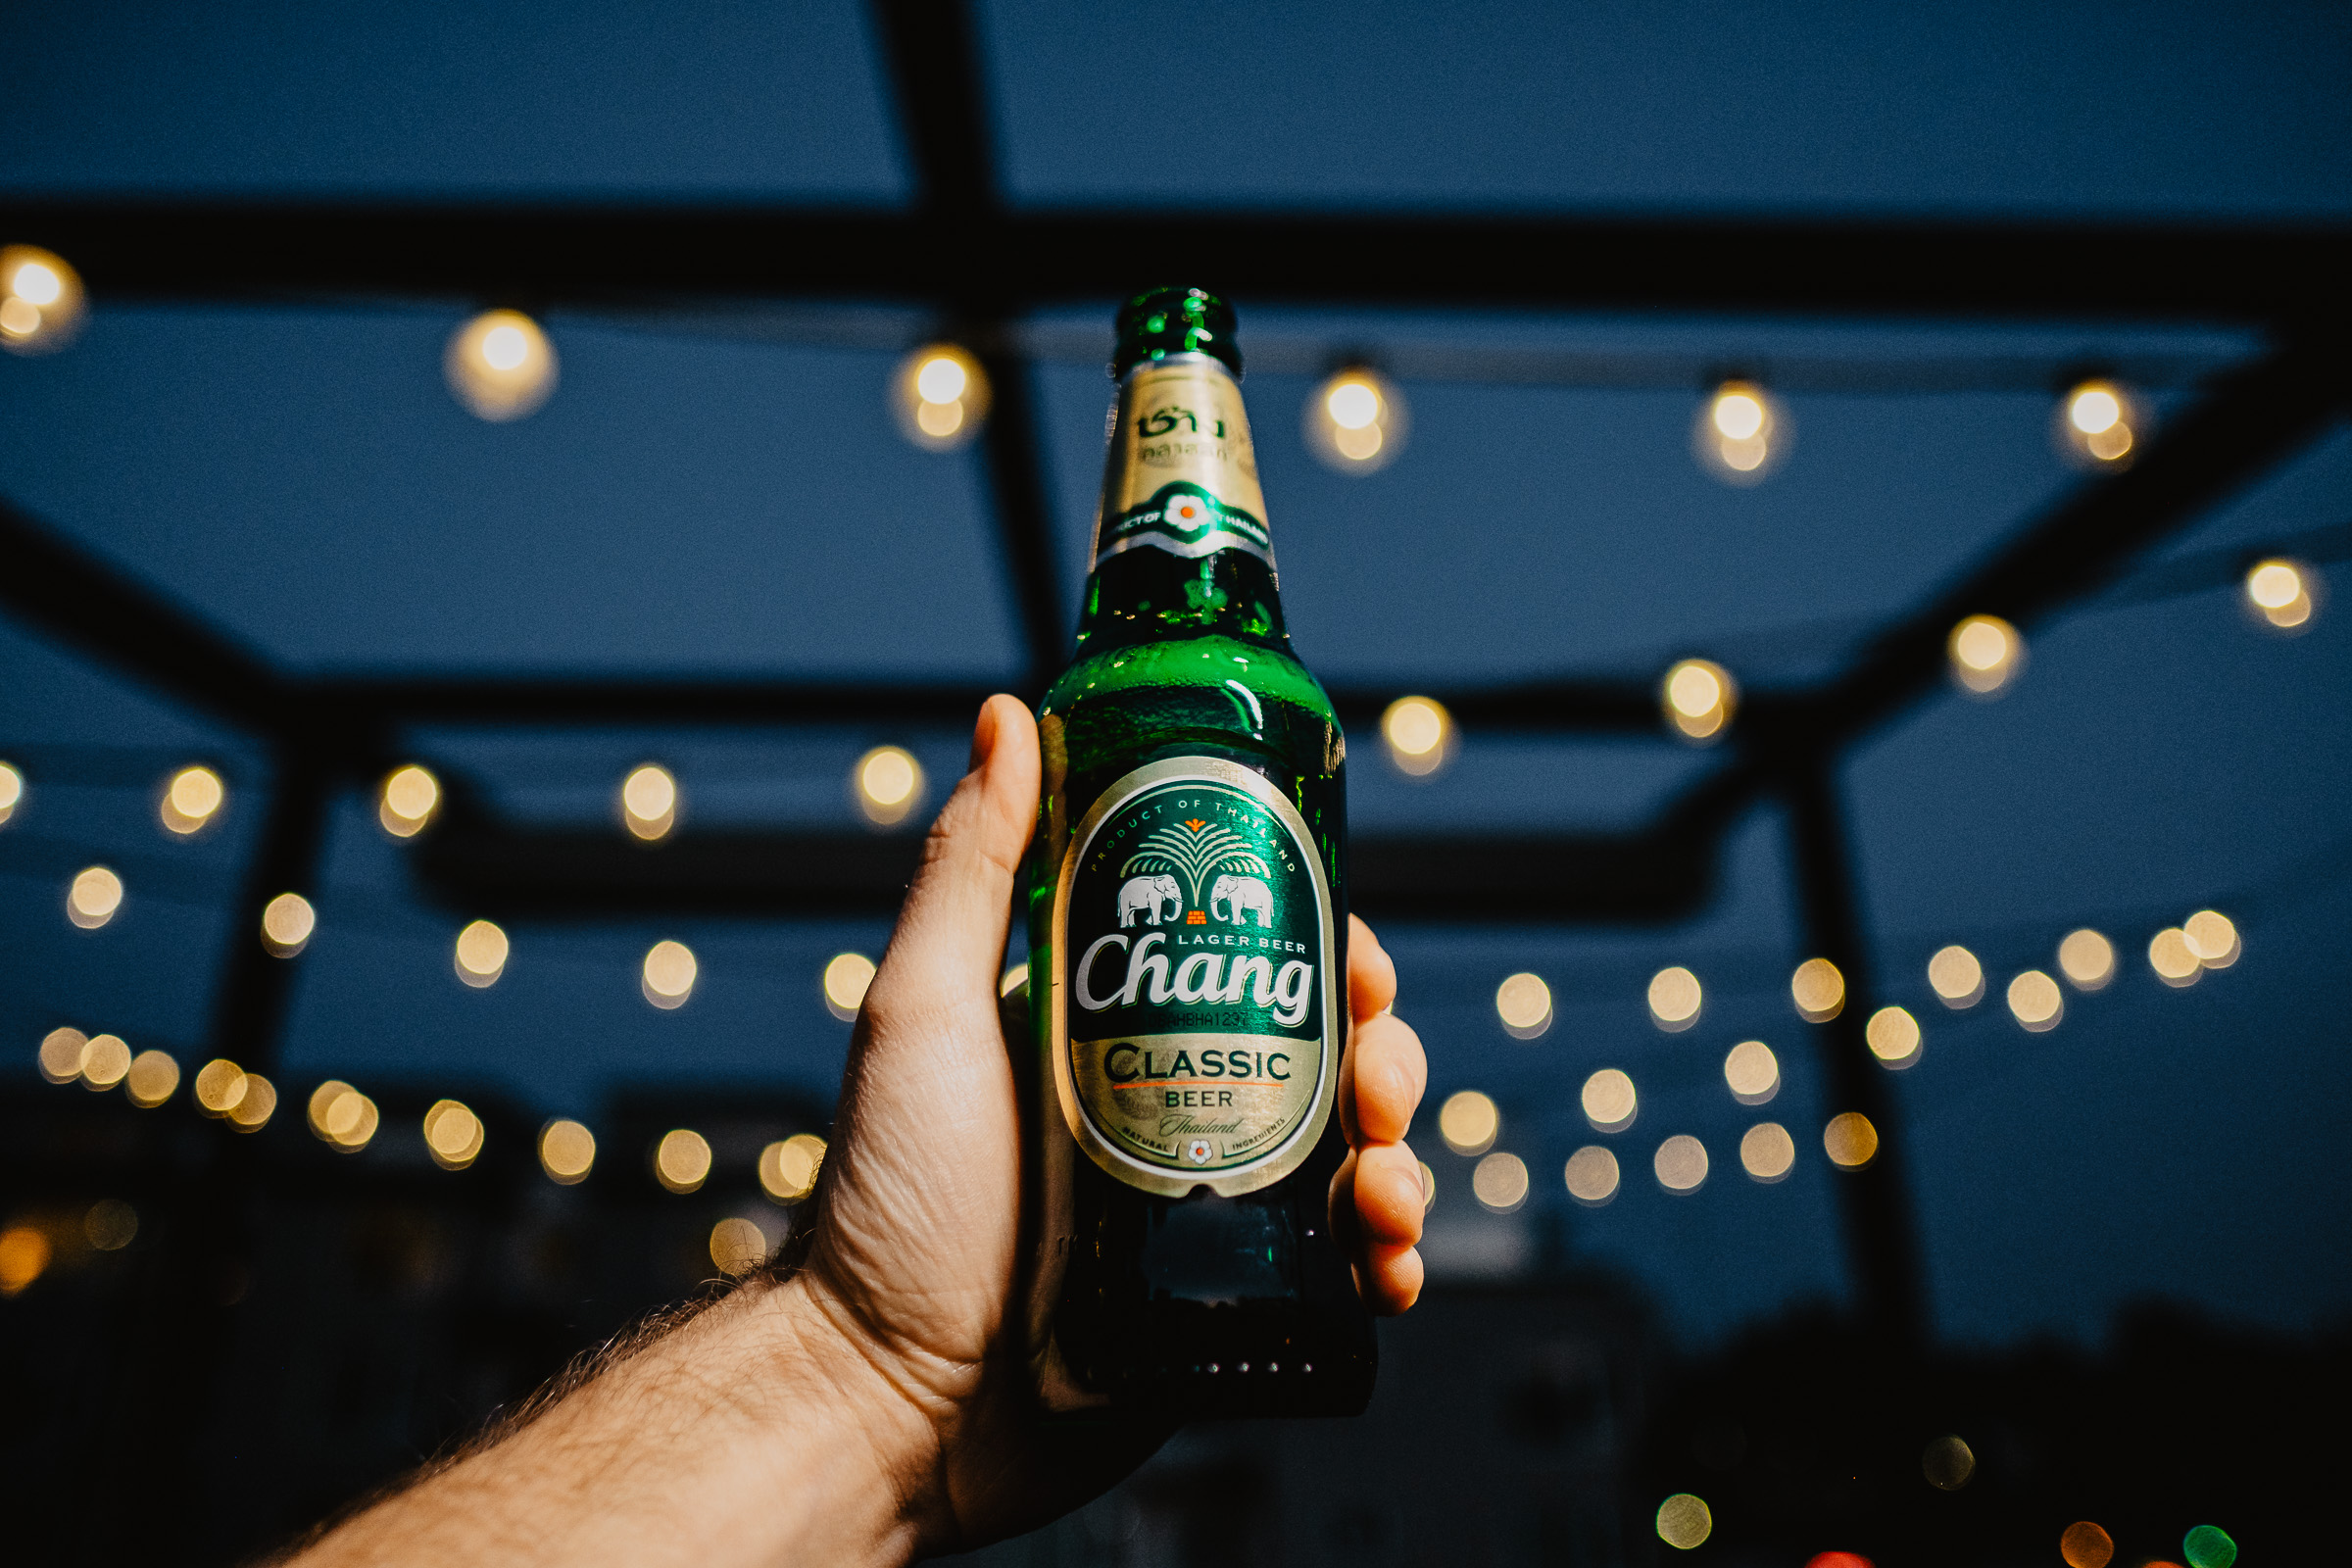 Change Beer Ad - Nelson Yong- Seattle Lifestlye Photography - Crowd Cow-13737.jpg